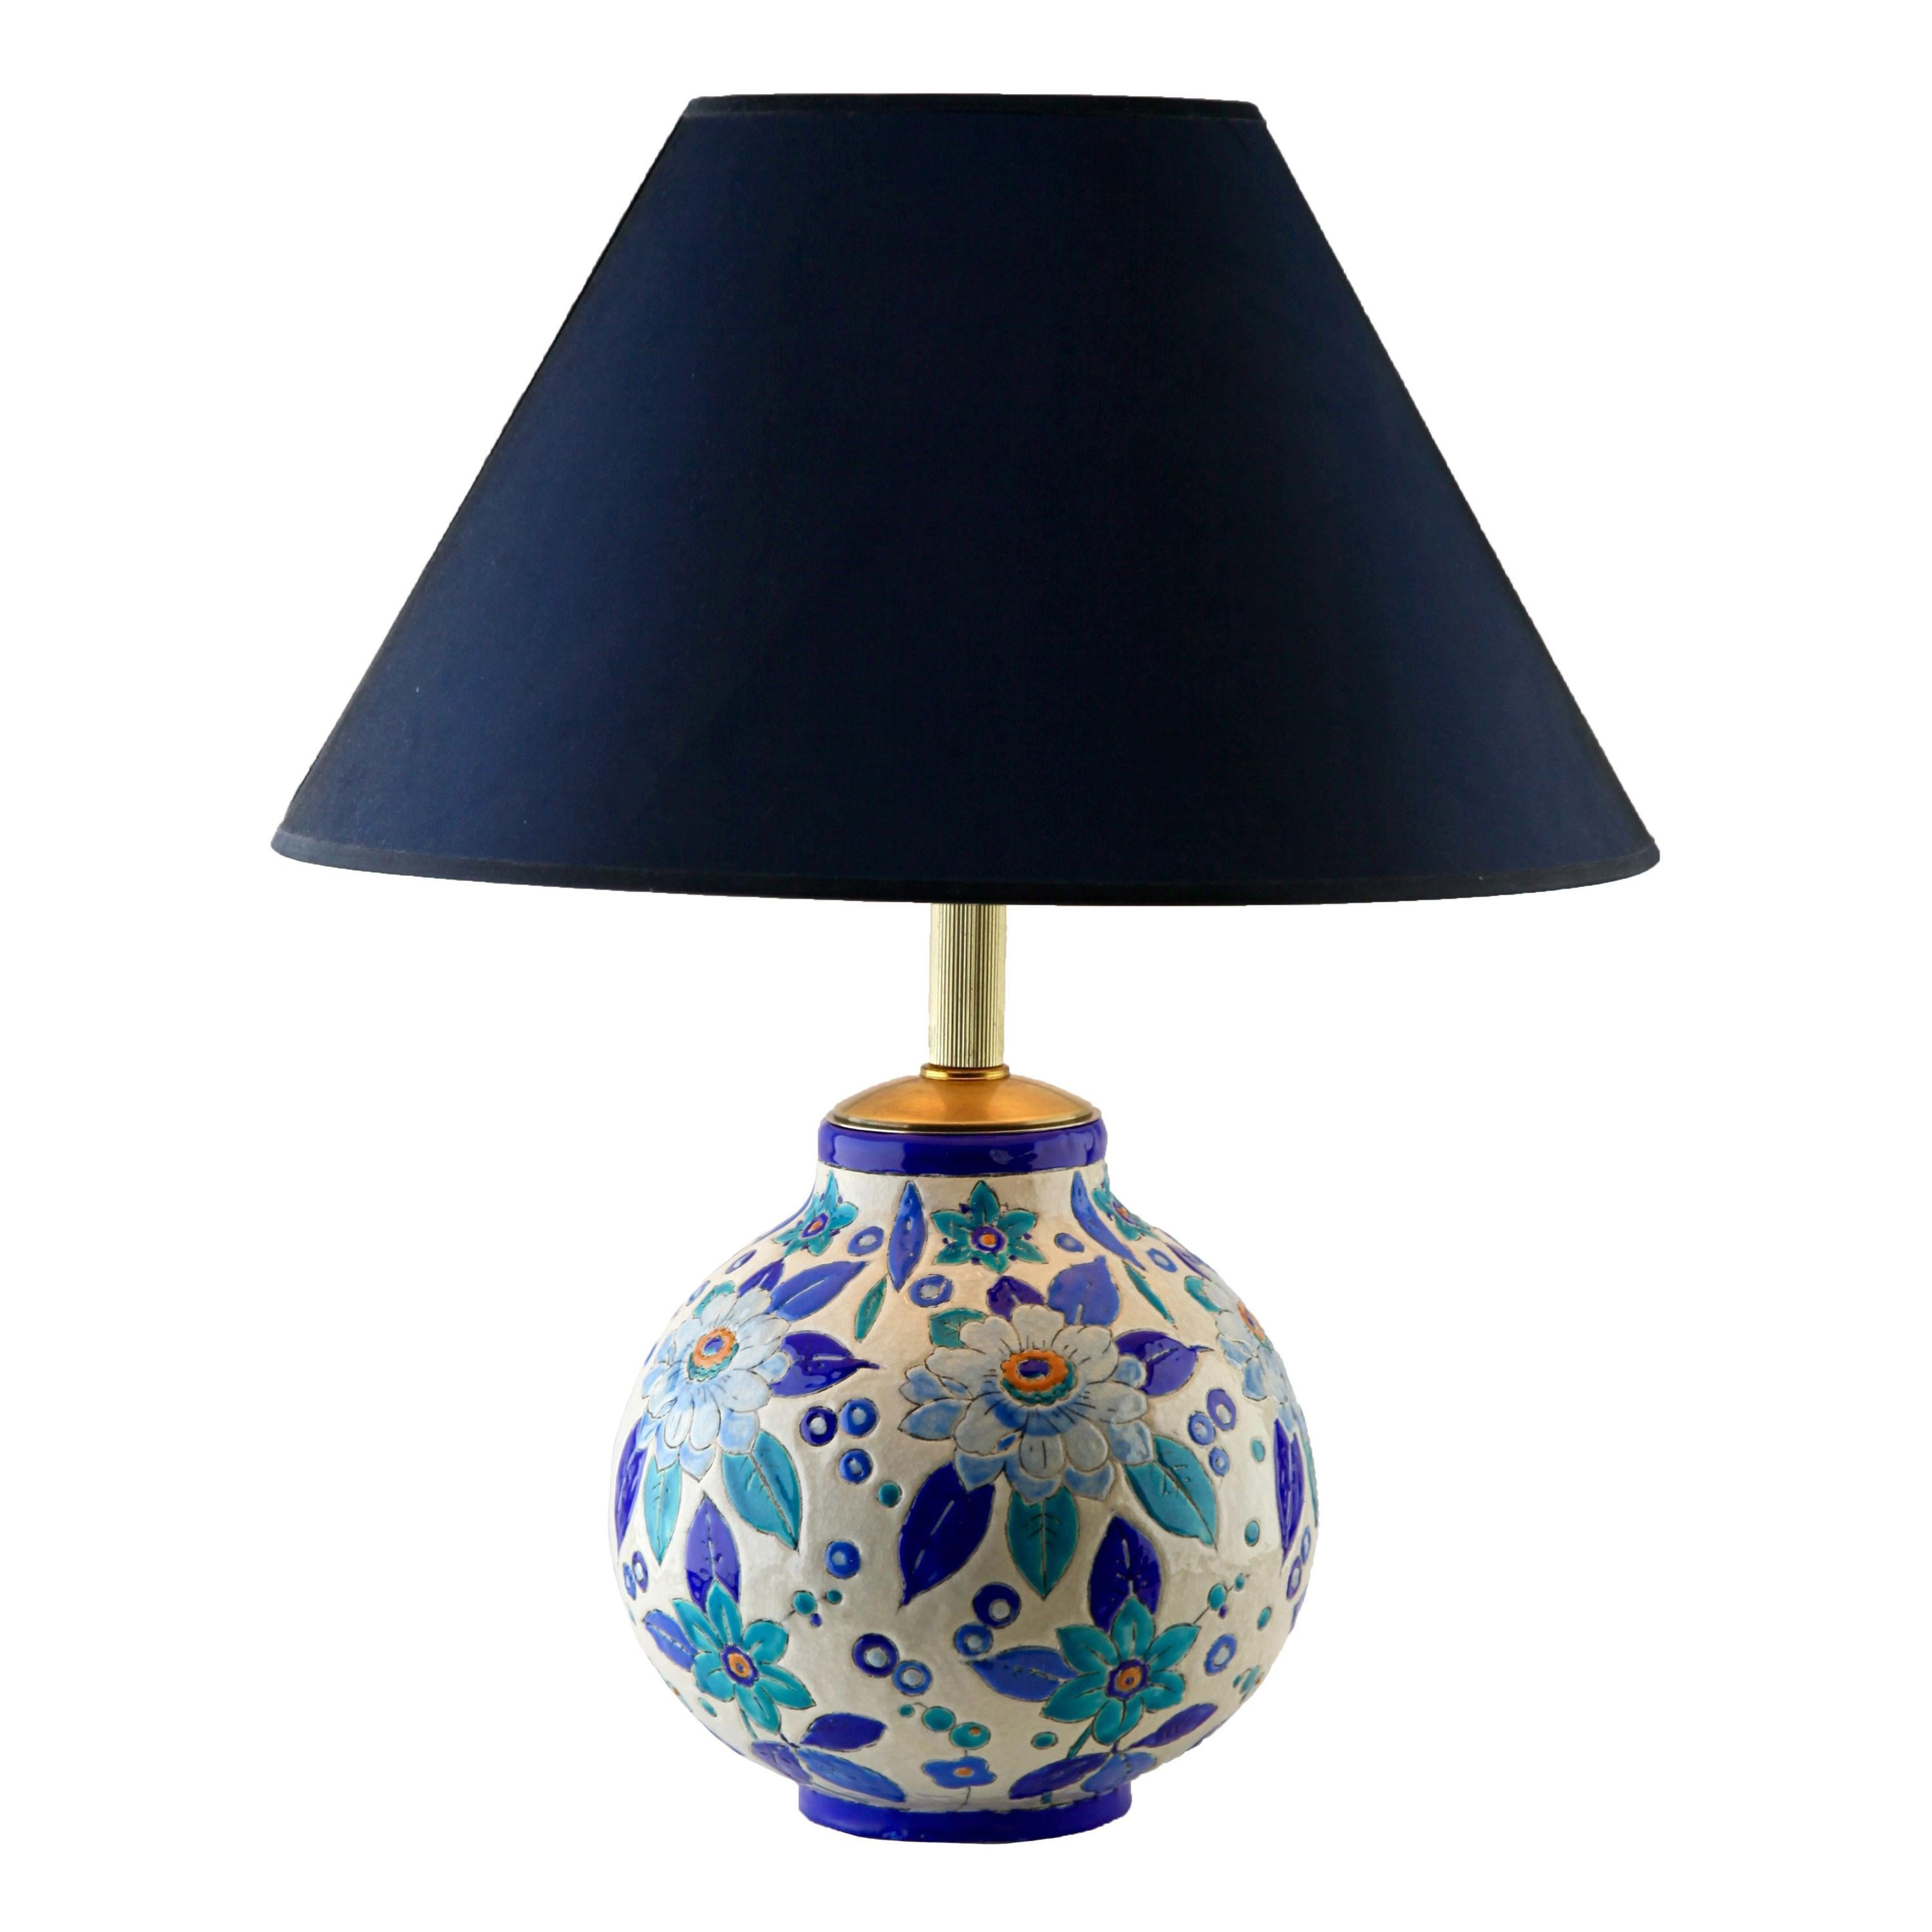 Charles Catteau Boch Frères Keramis Lamp Signed 'décor n° 2139 forme 894'